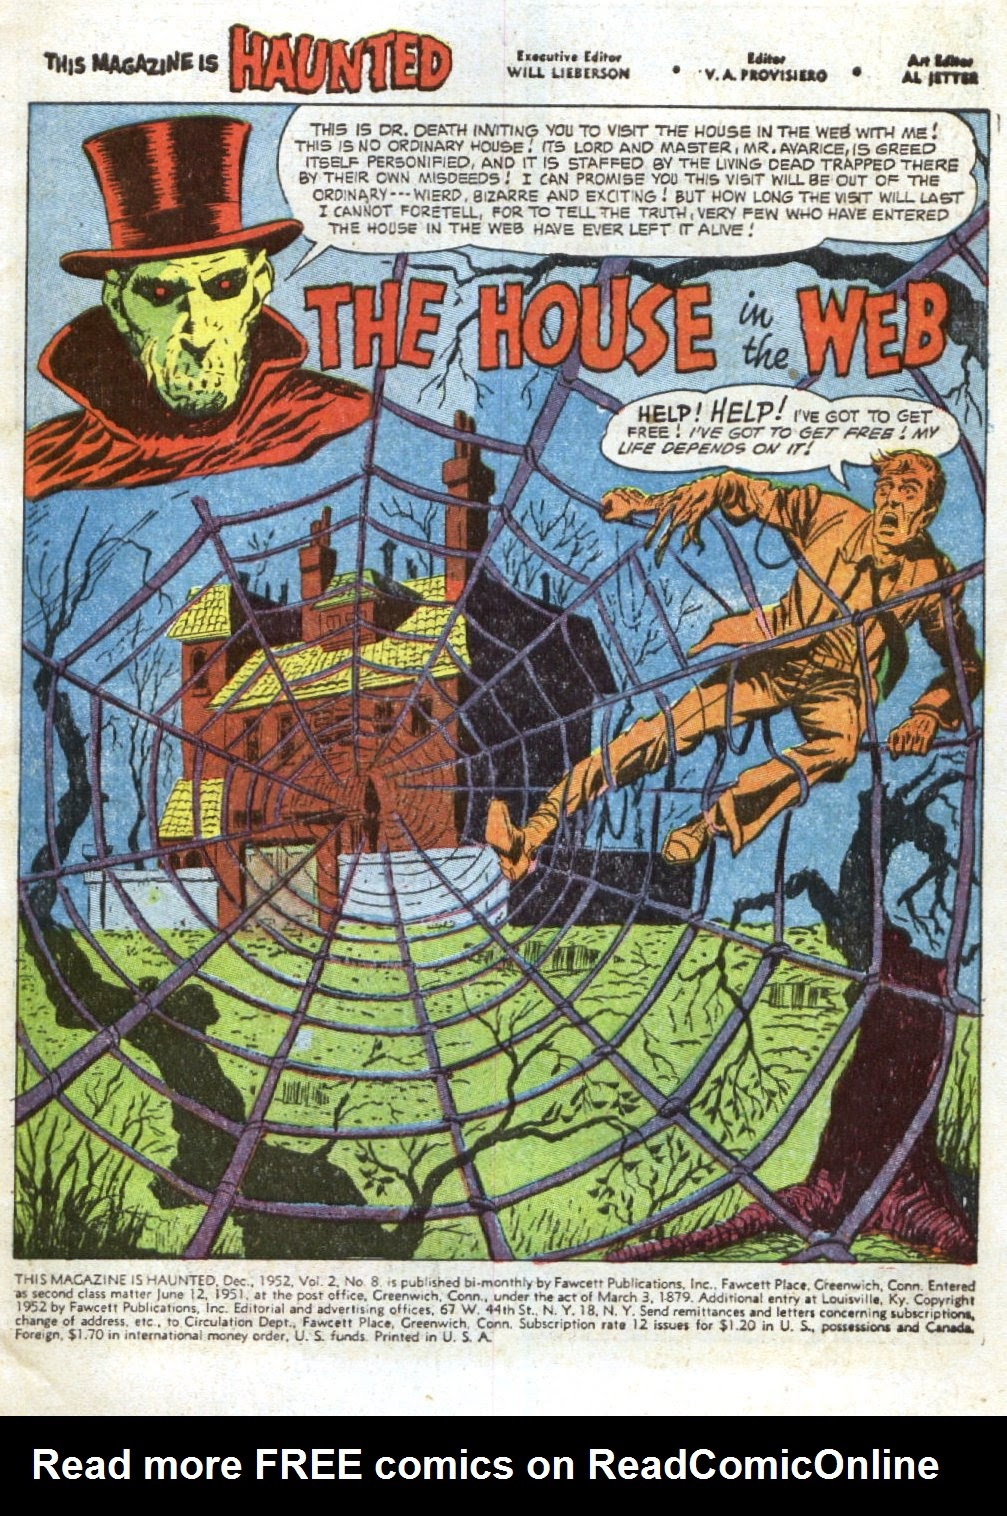 Read online This Magazine Is Haunted comic -  Issue #8 - 3